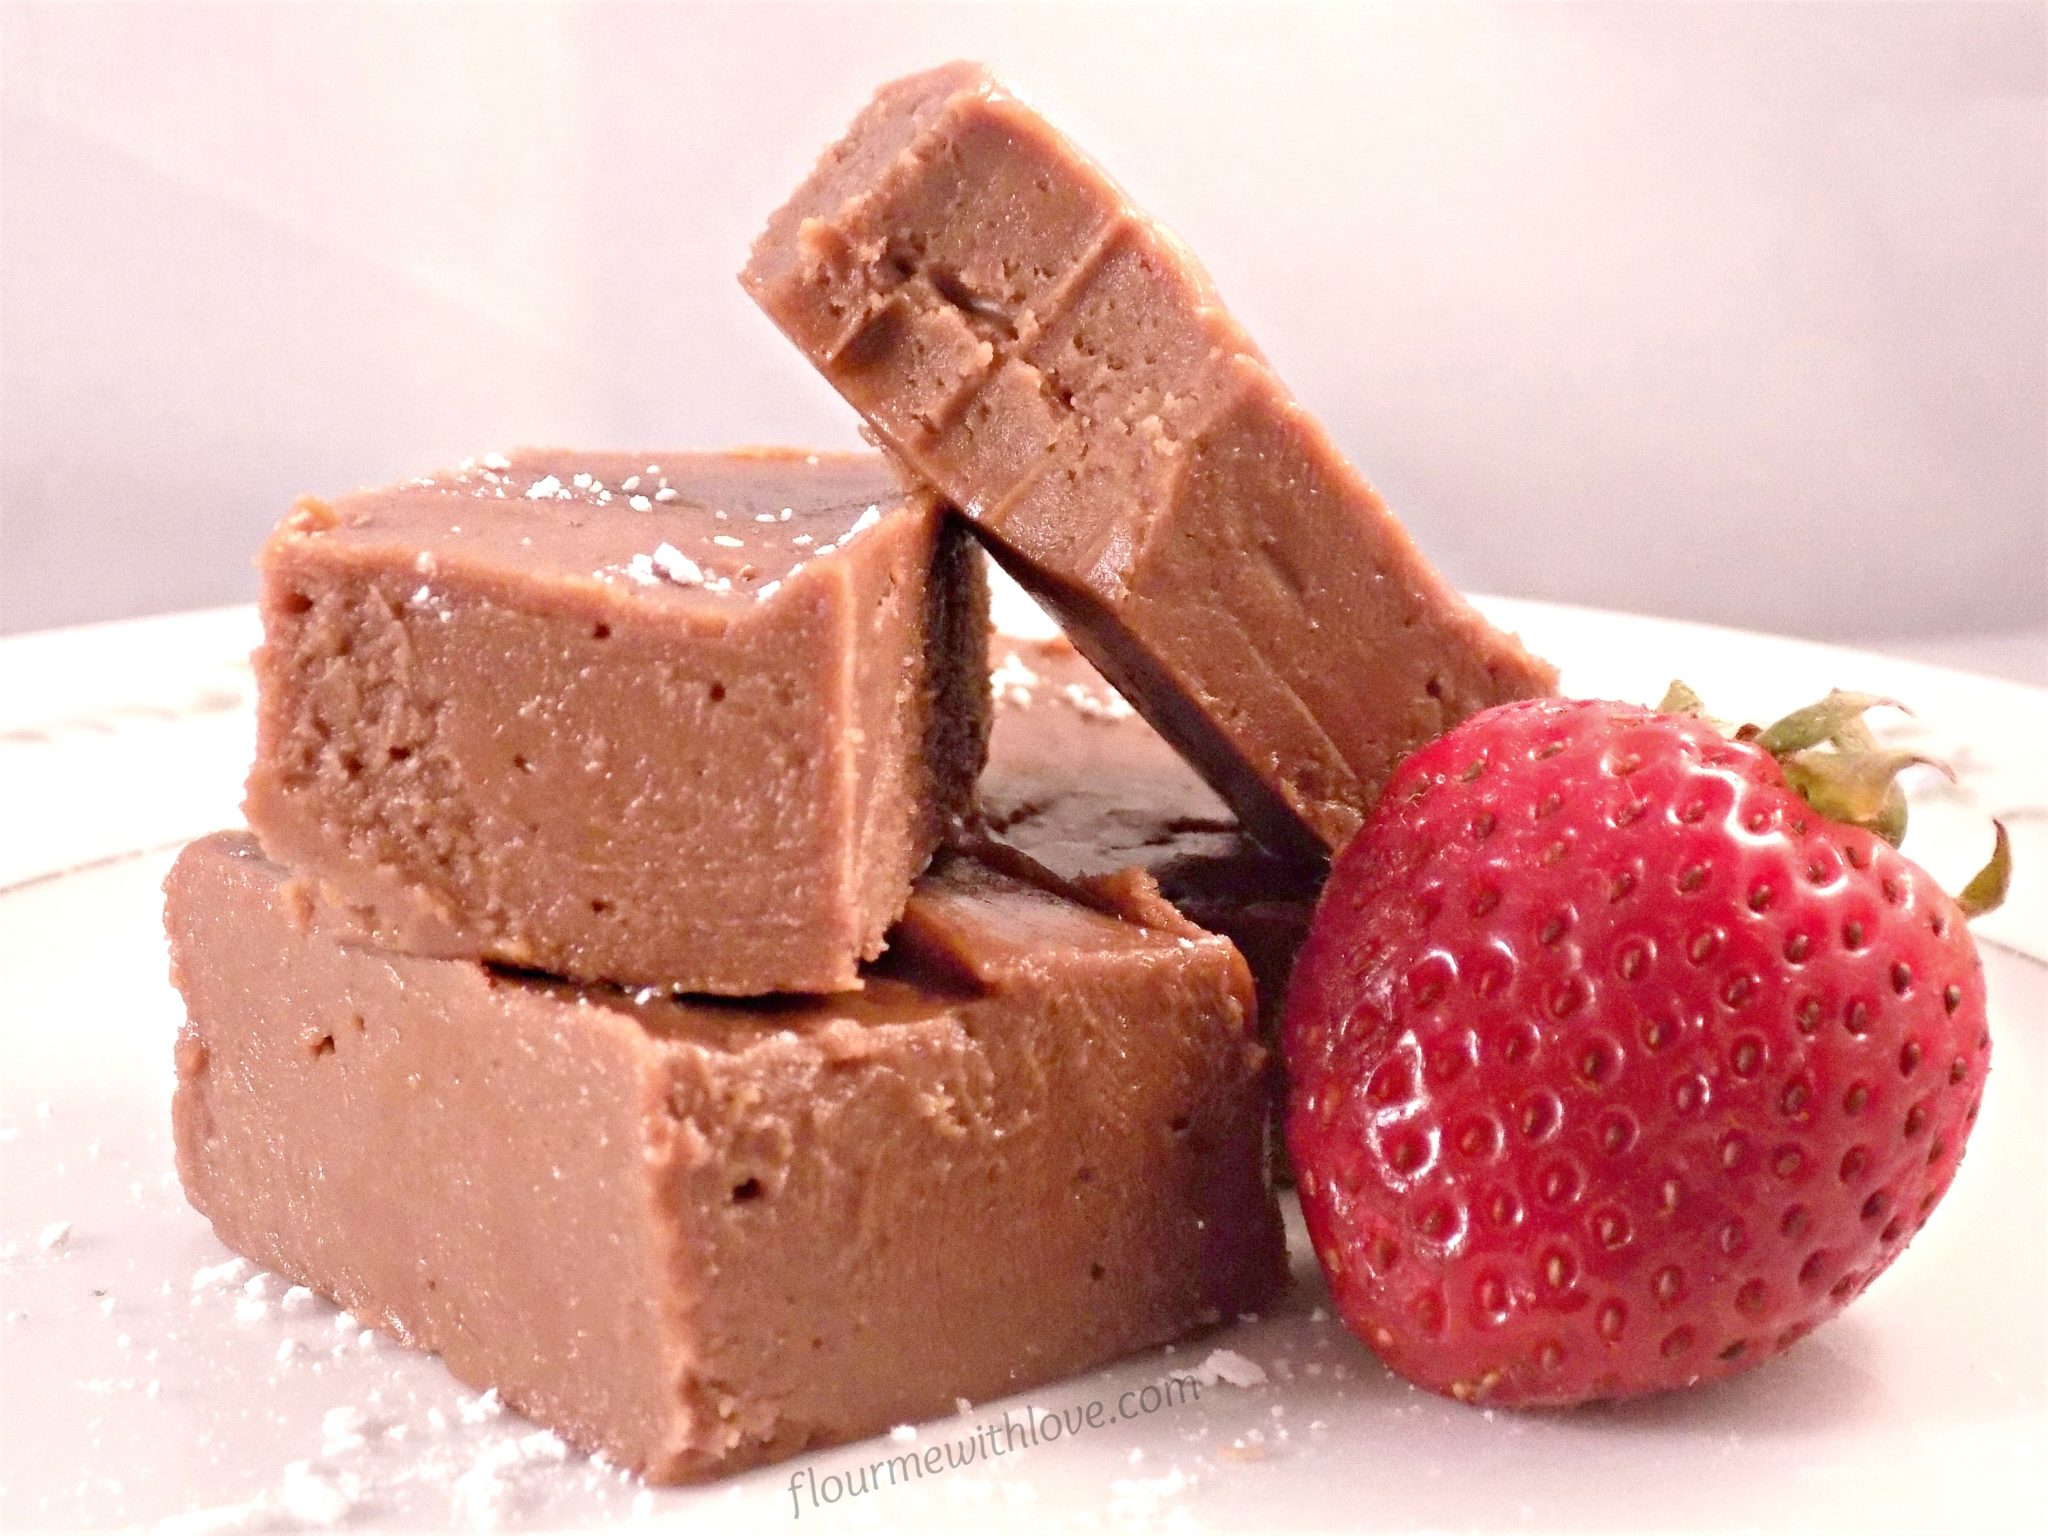 Easy Creamy Chocolate Hazelnut (Nutella) Fudge made in the microwave!